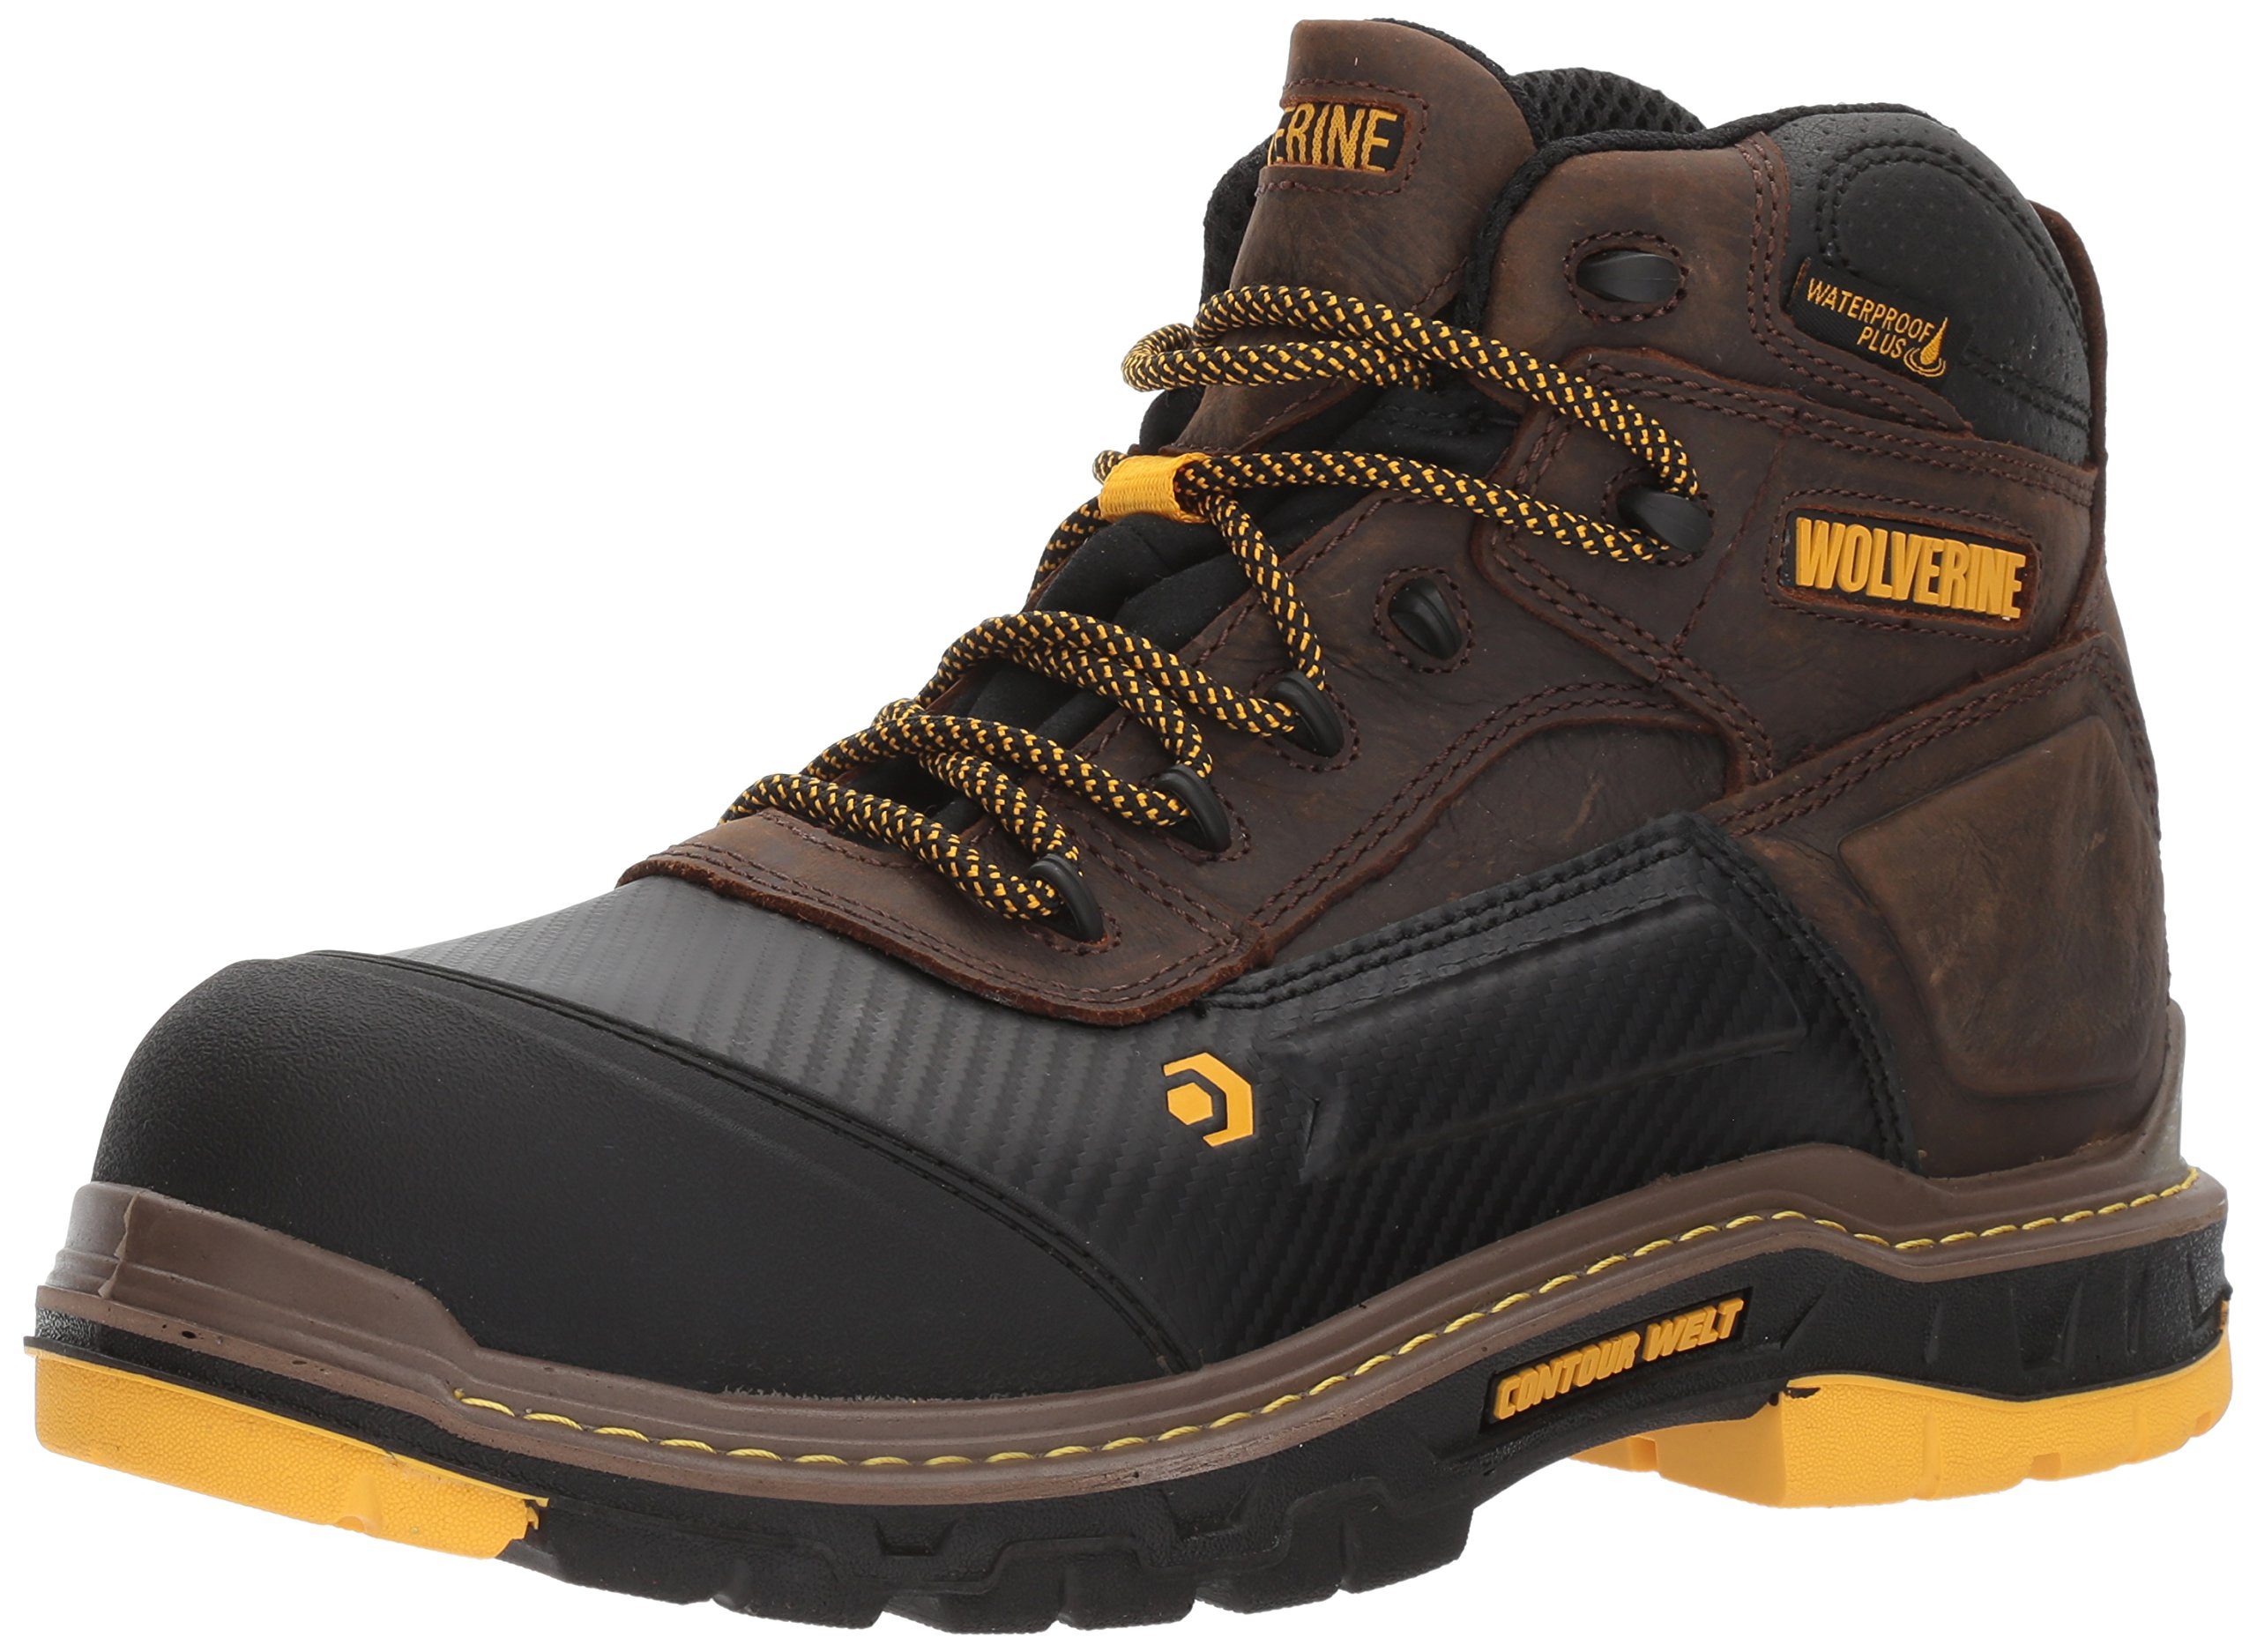 Wolverine Men's Overpass 6'' Composite Toe Waterproof Insulated Work Boot by Wolverine (Image #1)